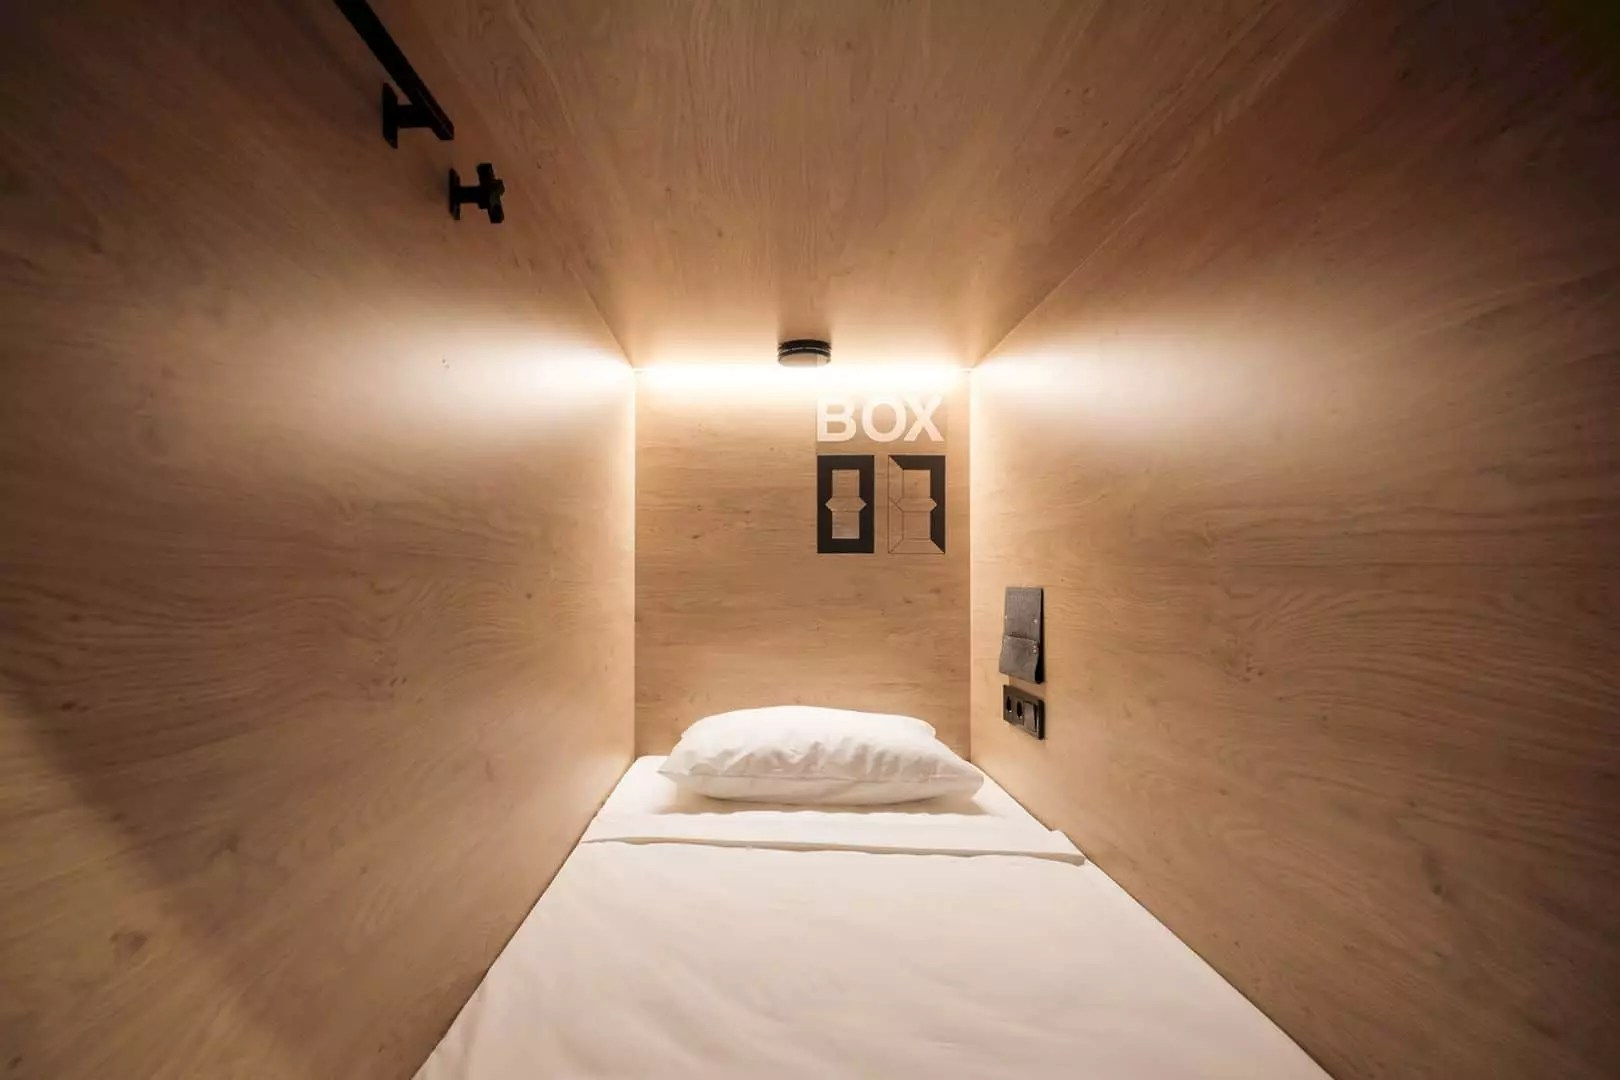 inBOX Capsule Hotel: The Five-Star Hostel with Modern Interior and Unique Personal Space